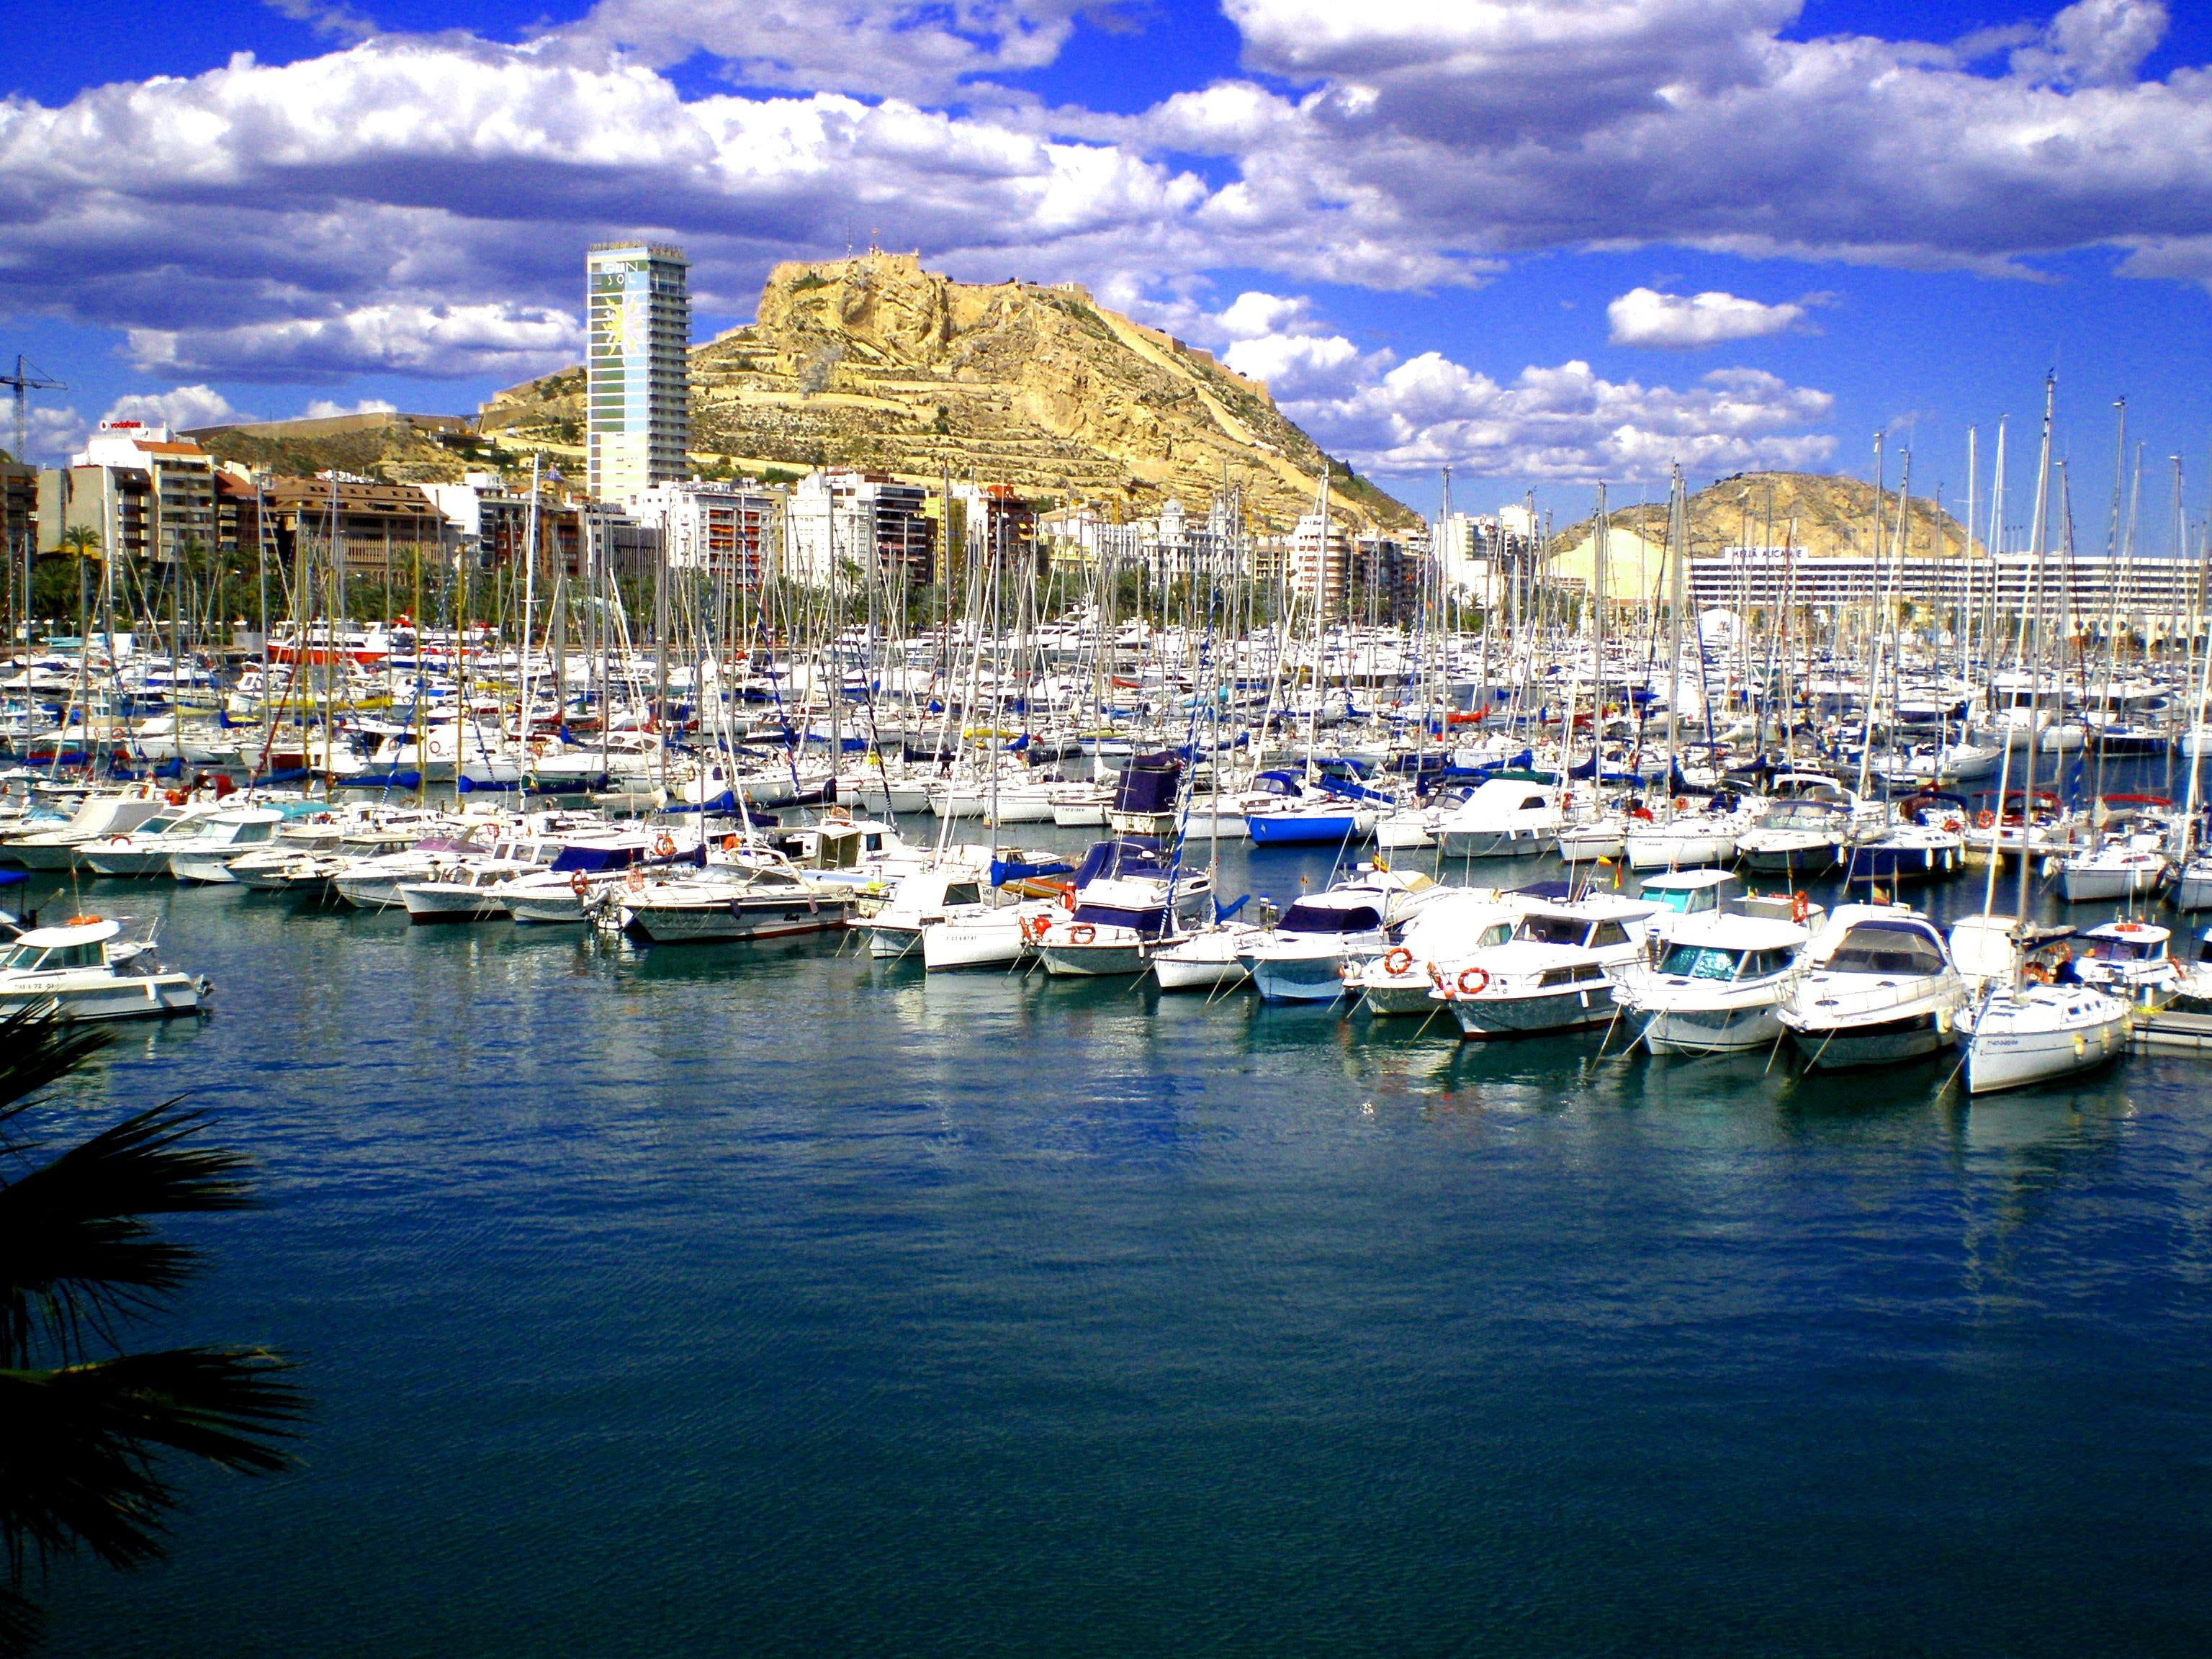 Dock in Port of Alicante